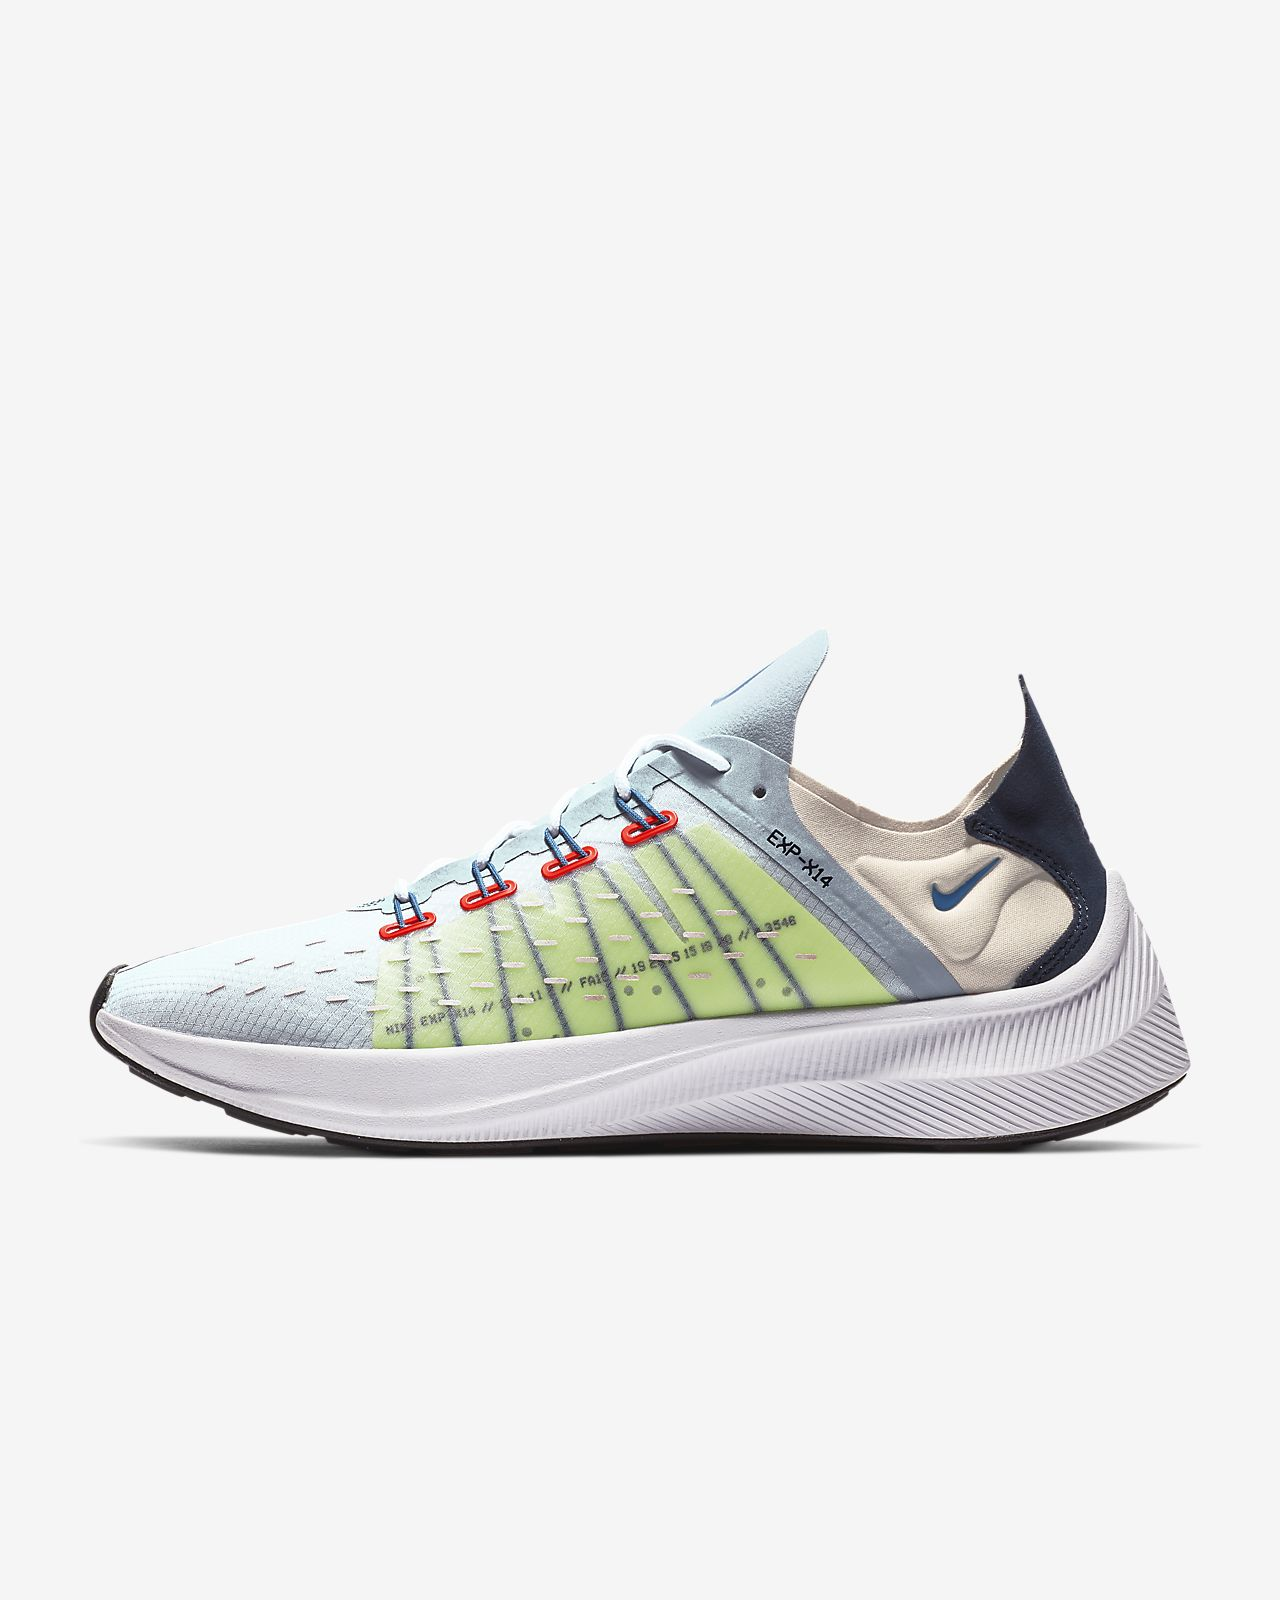 6d1bb353fe8 Nike EXP-X14 Men s Shoe. Nike.com